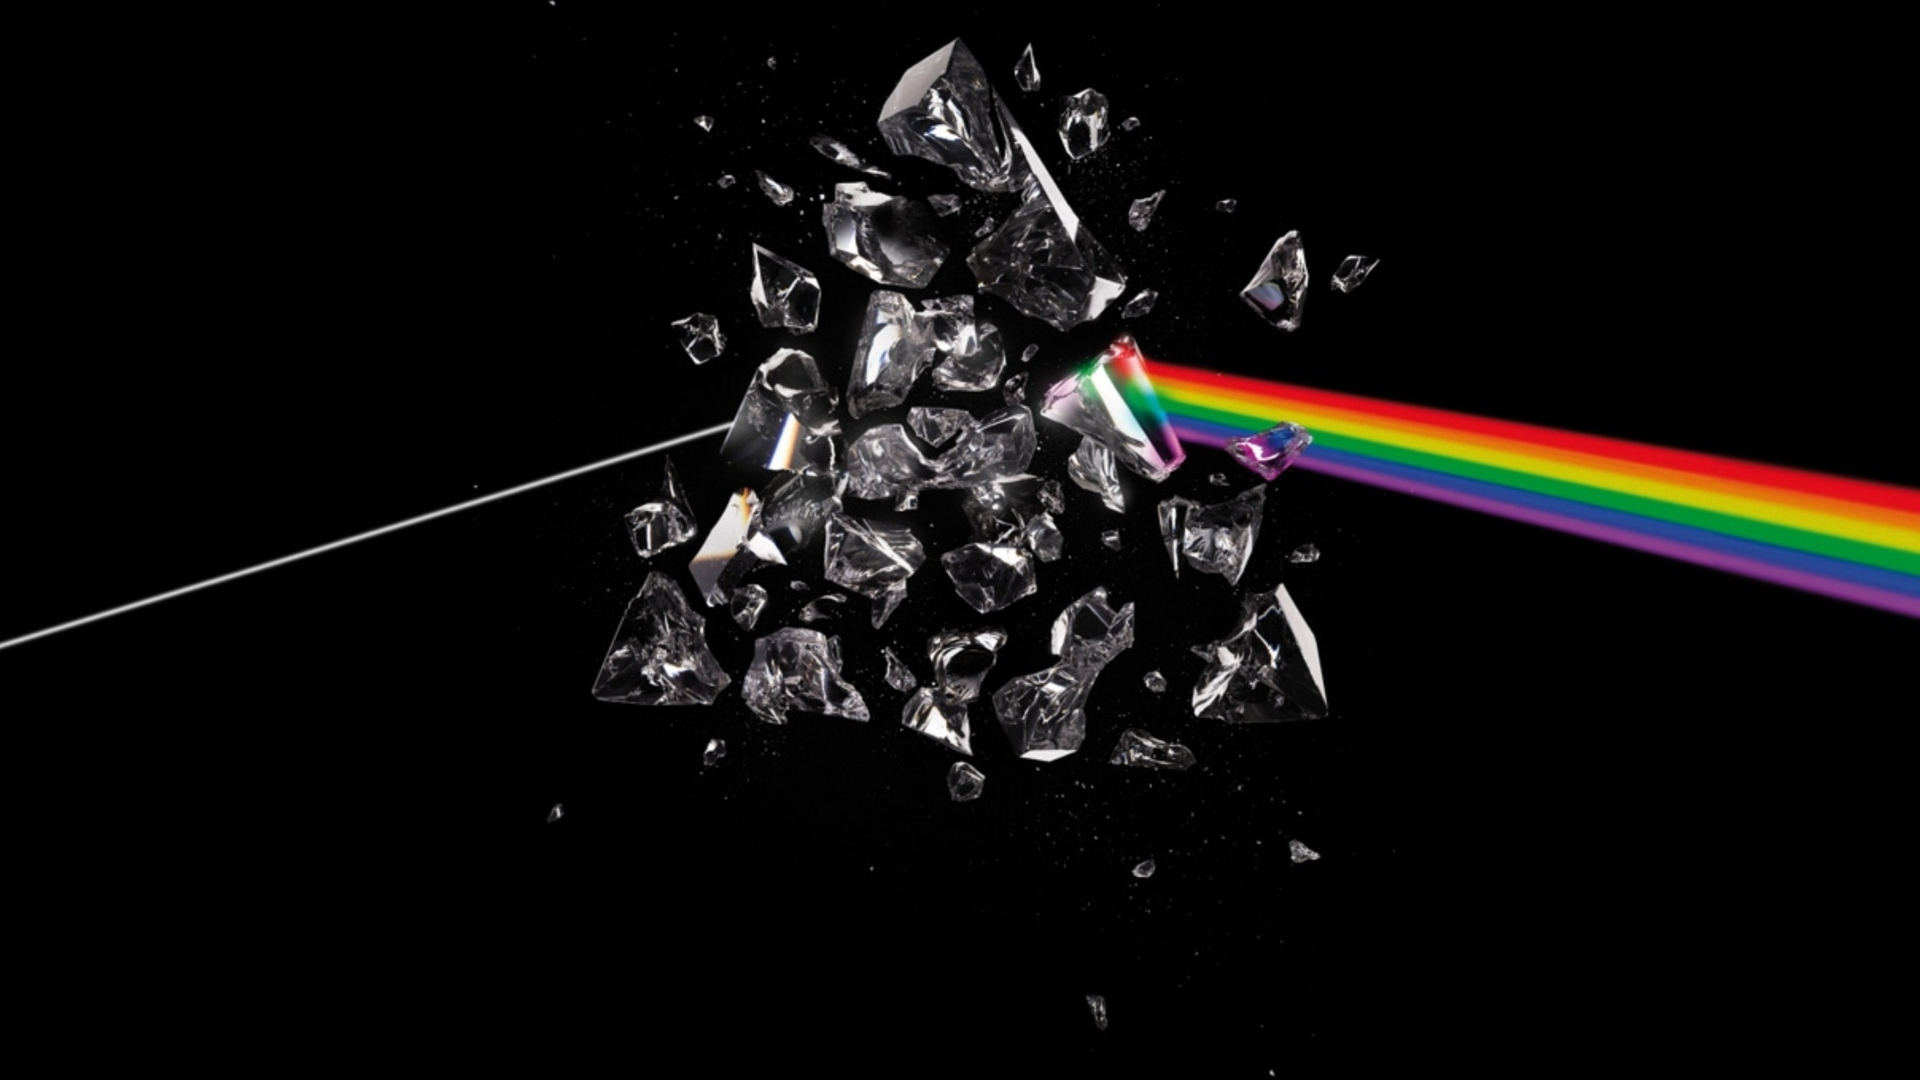 download wallpaper 1920x1080 pink floyd, debris, rainbow, graphics